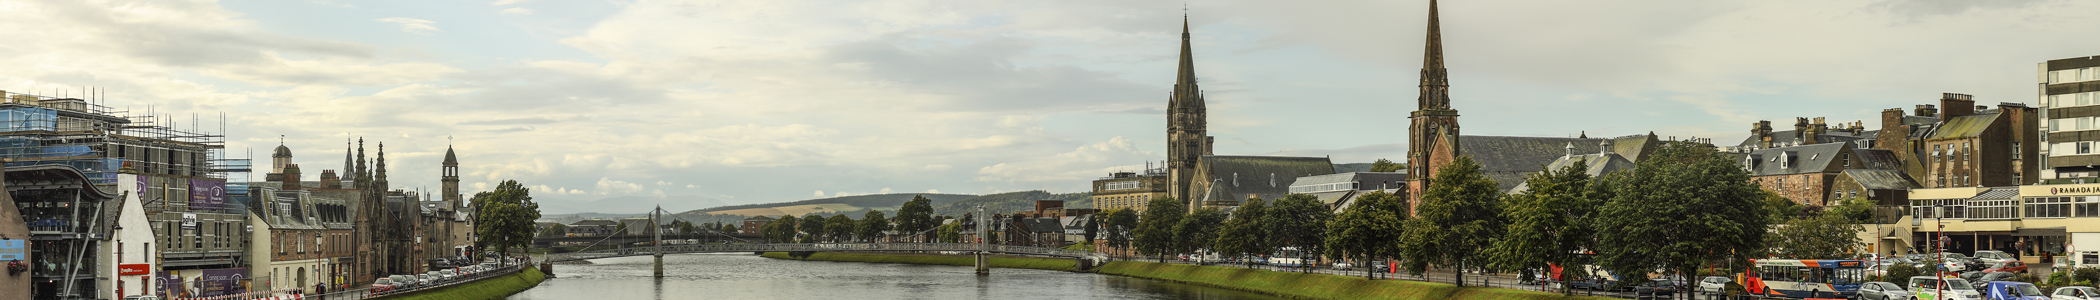 Inverness � Travel guide at Wikivoyage